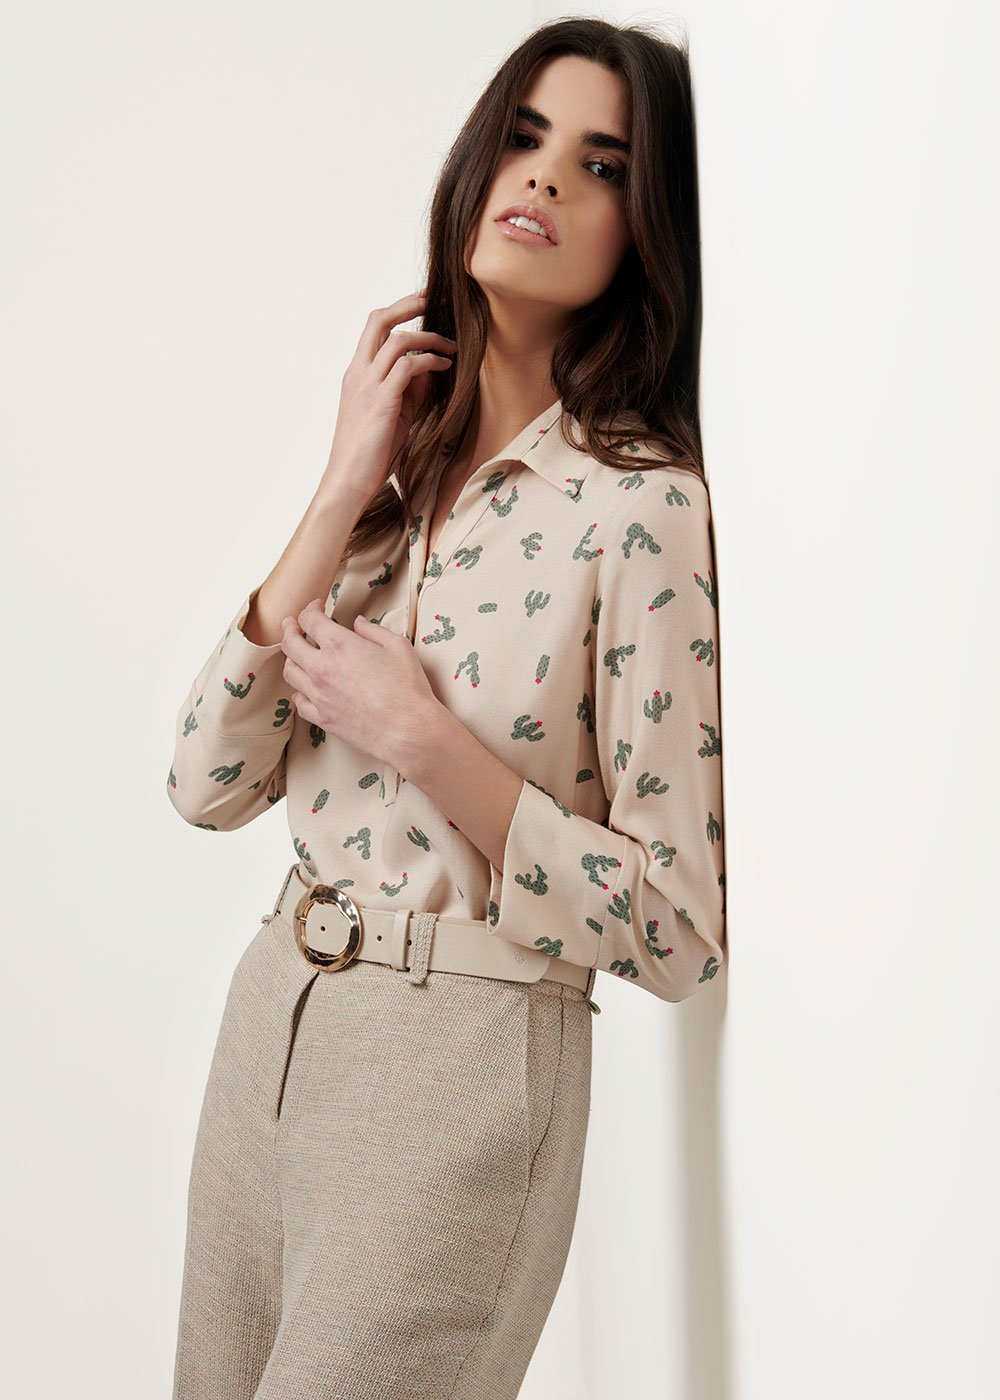 Angela shirt with cactus print - Beige / Timo Fantasia - Woman